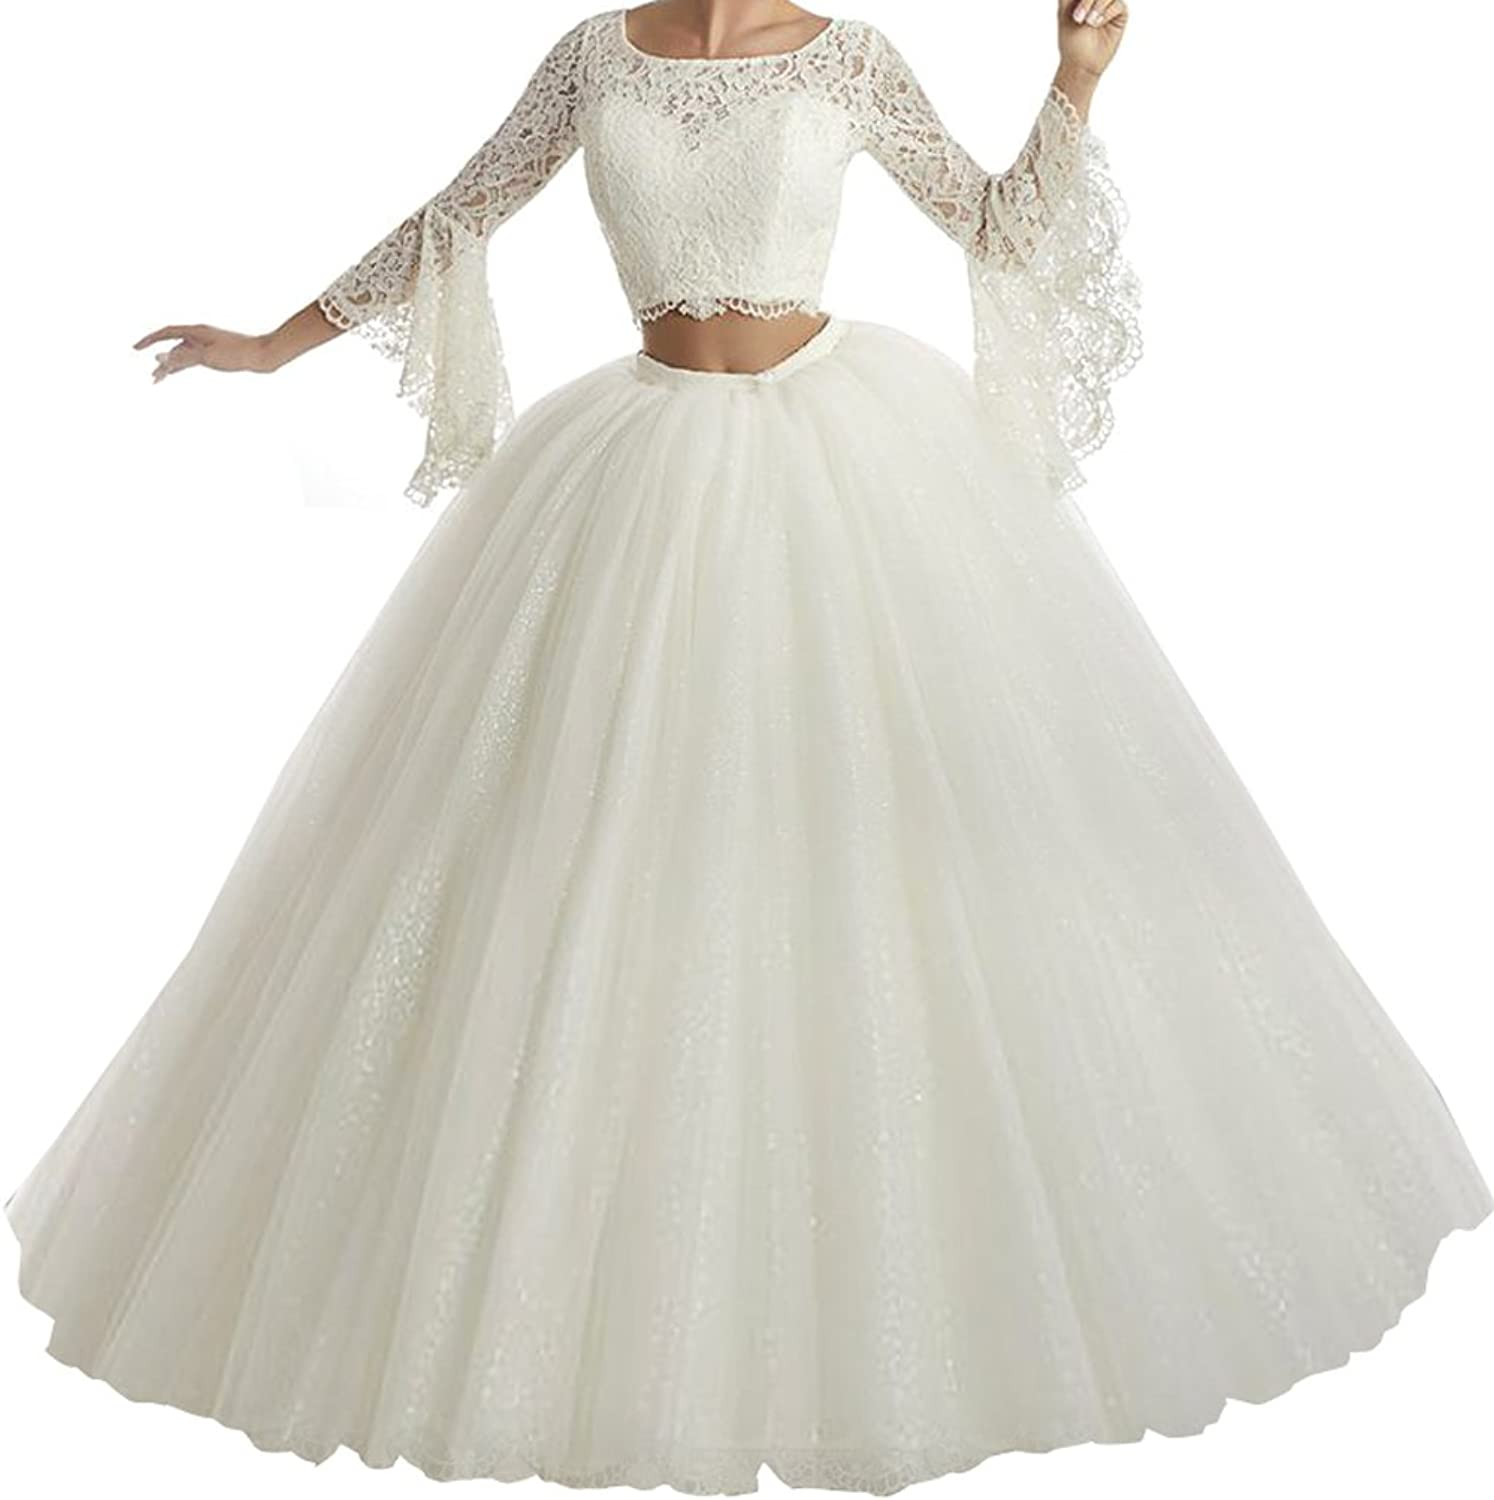 Yang Girls 15 16 Ball Gowns Long Sleeves Two Pieces Women Quinceanera Dress